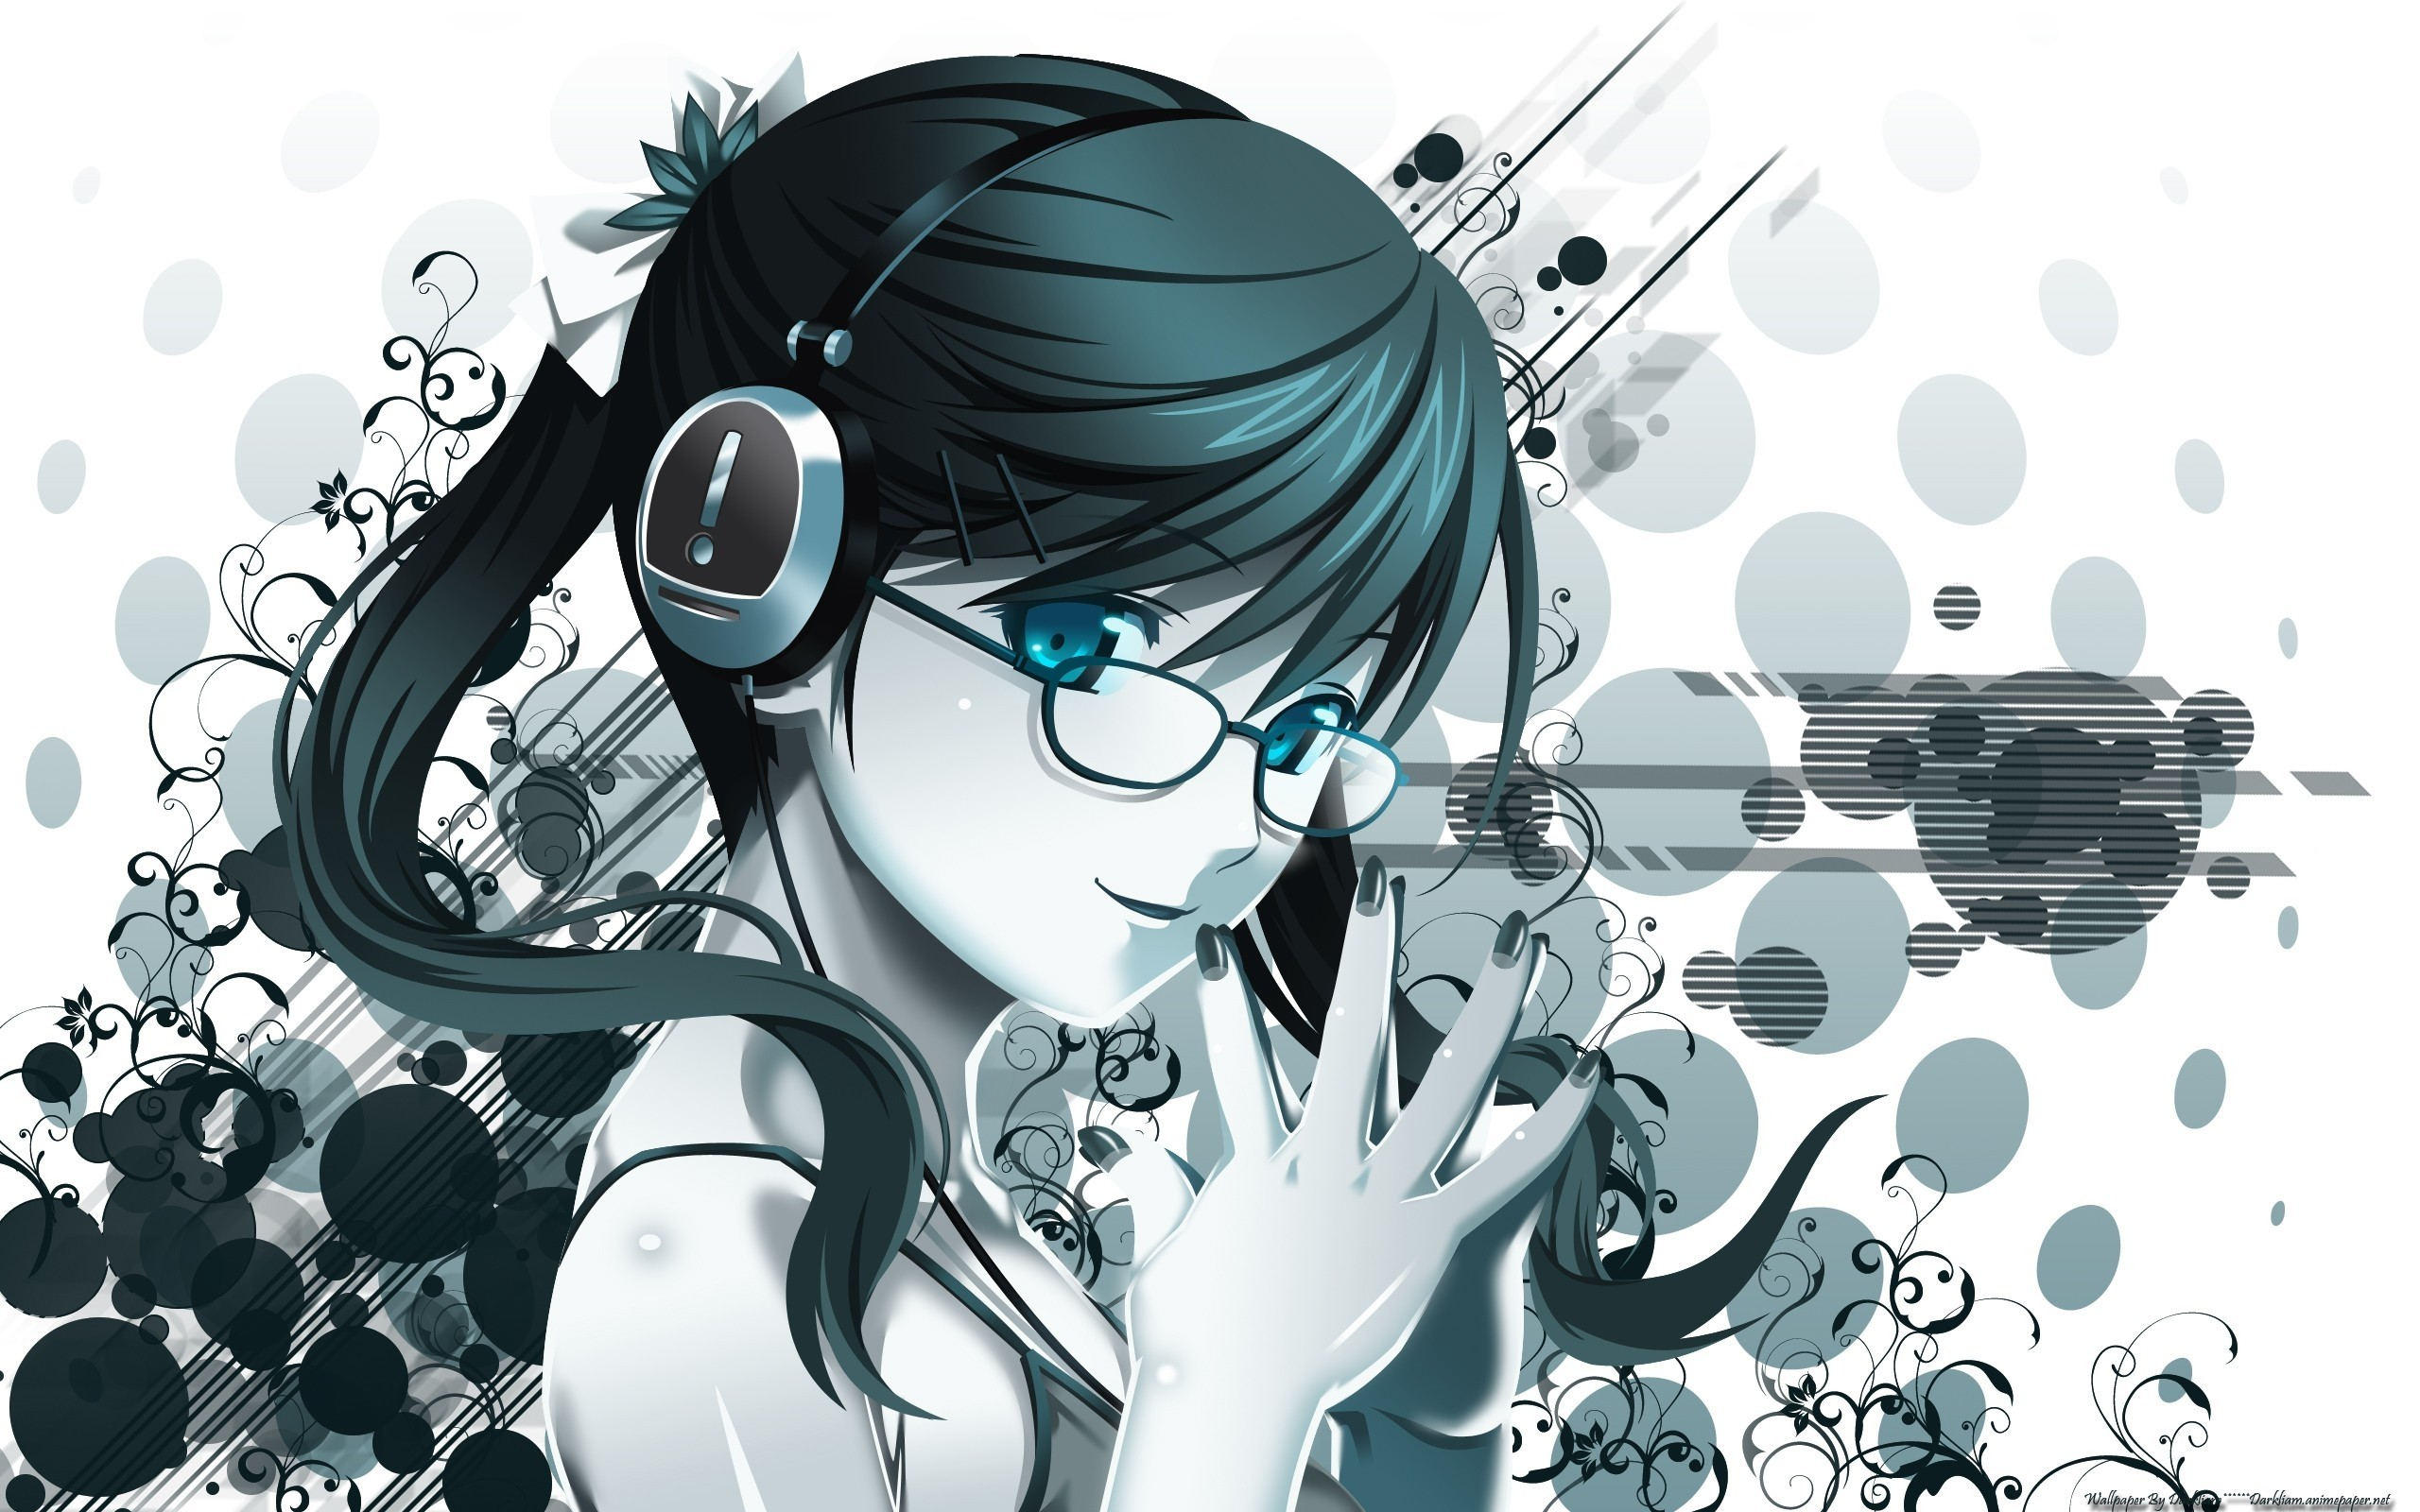 Anime 2560x1600 anime girls anime headphones glasses meganekko original characters